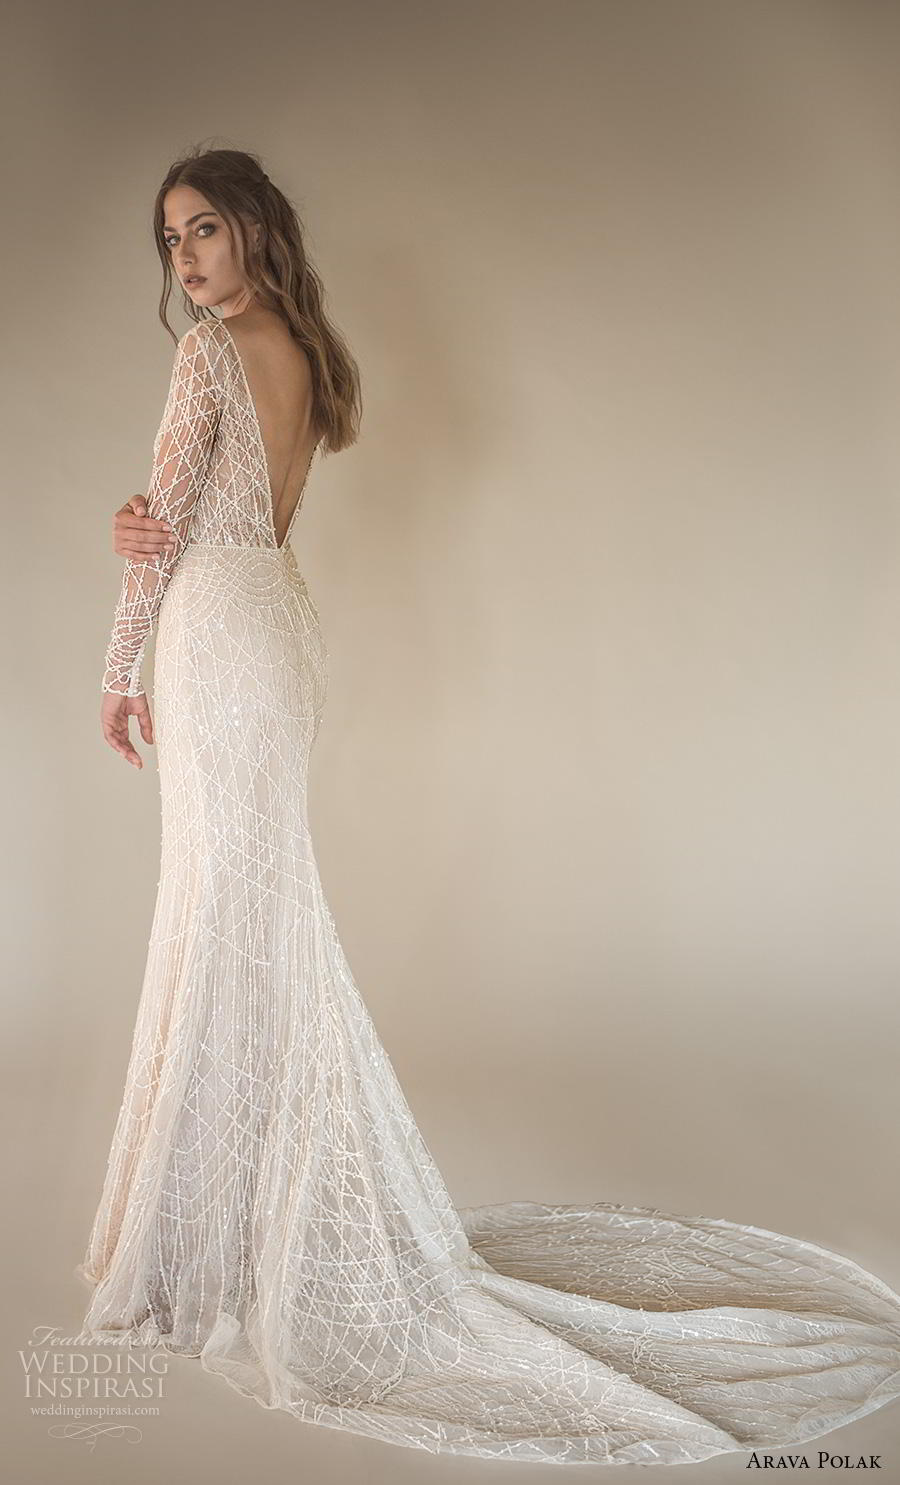 arava polak 2019 bridal long sleeves deep v neck full embellishment sexy glamorous sheath wedding dress backless low v back chapel train (11) bv